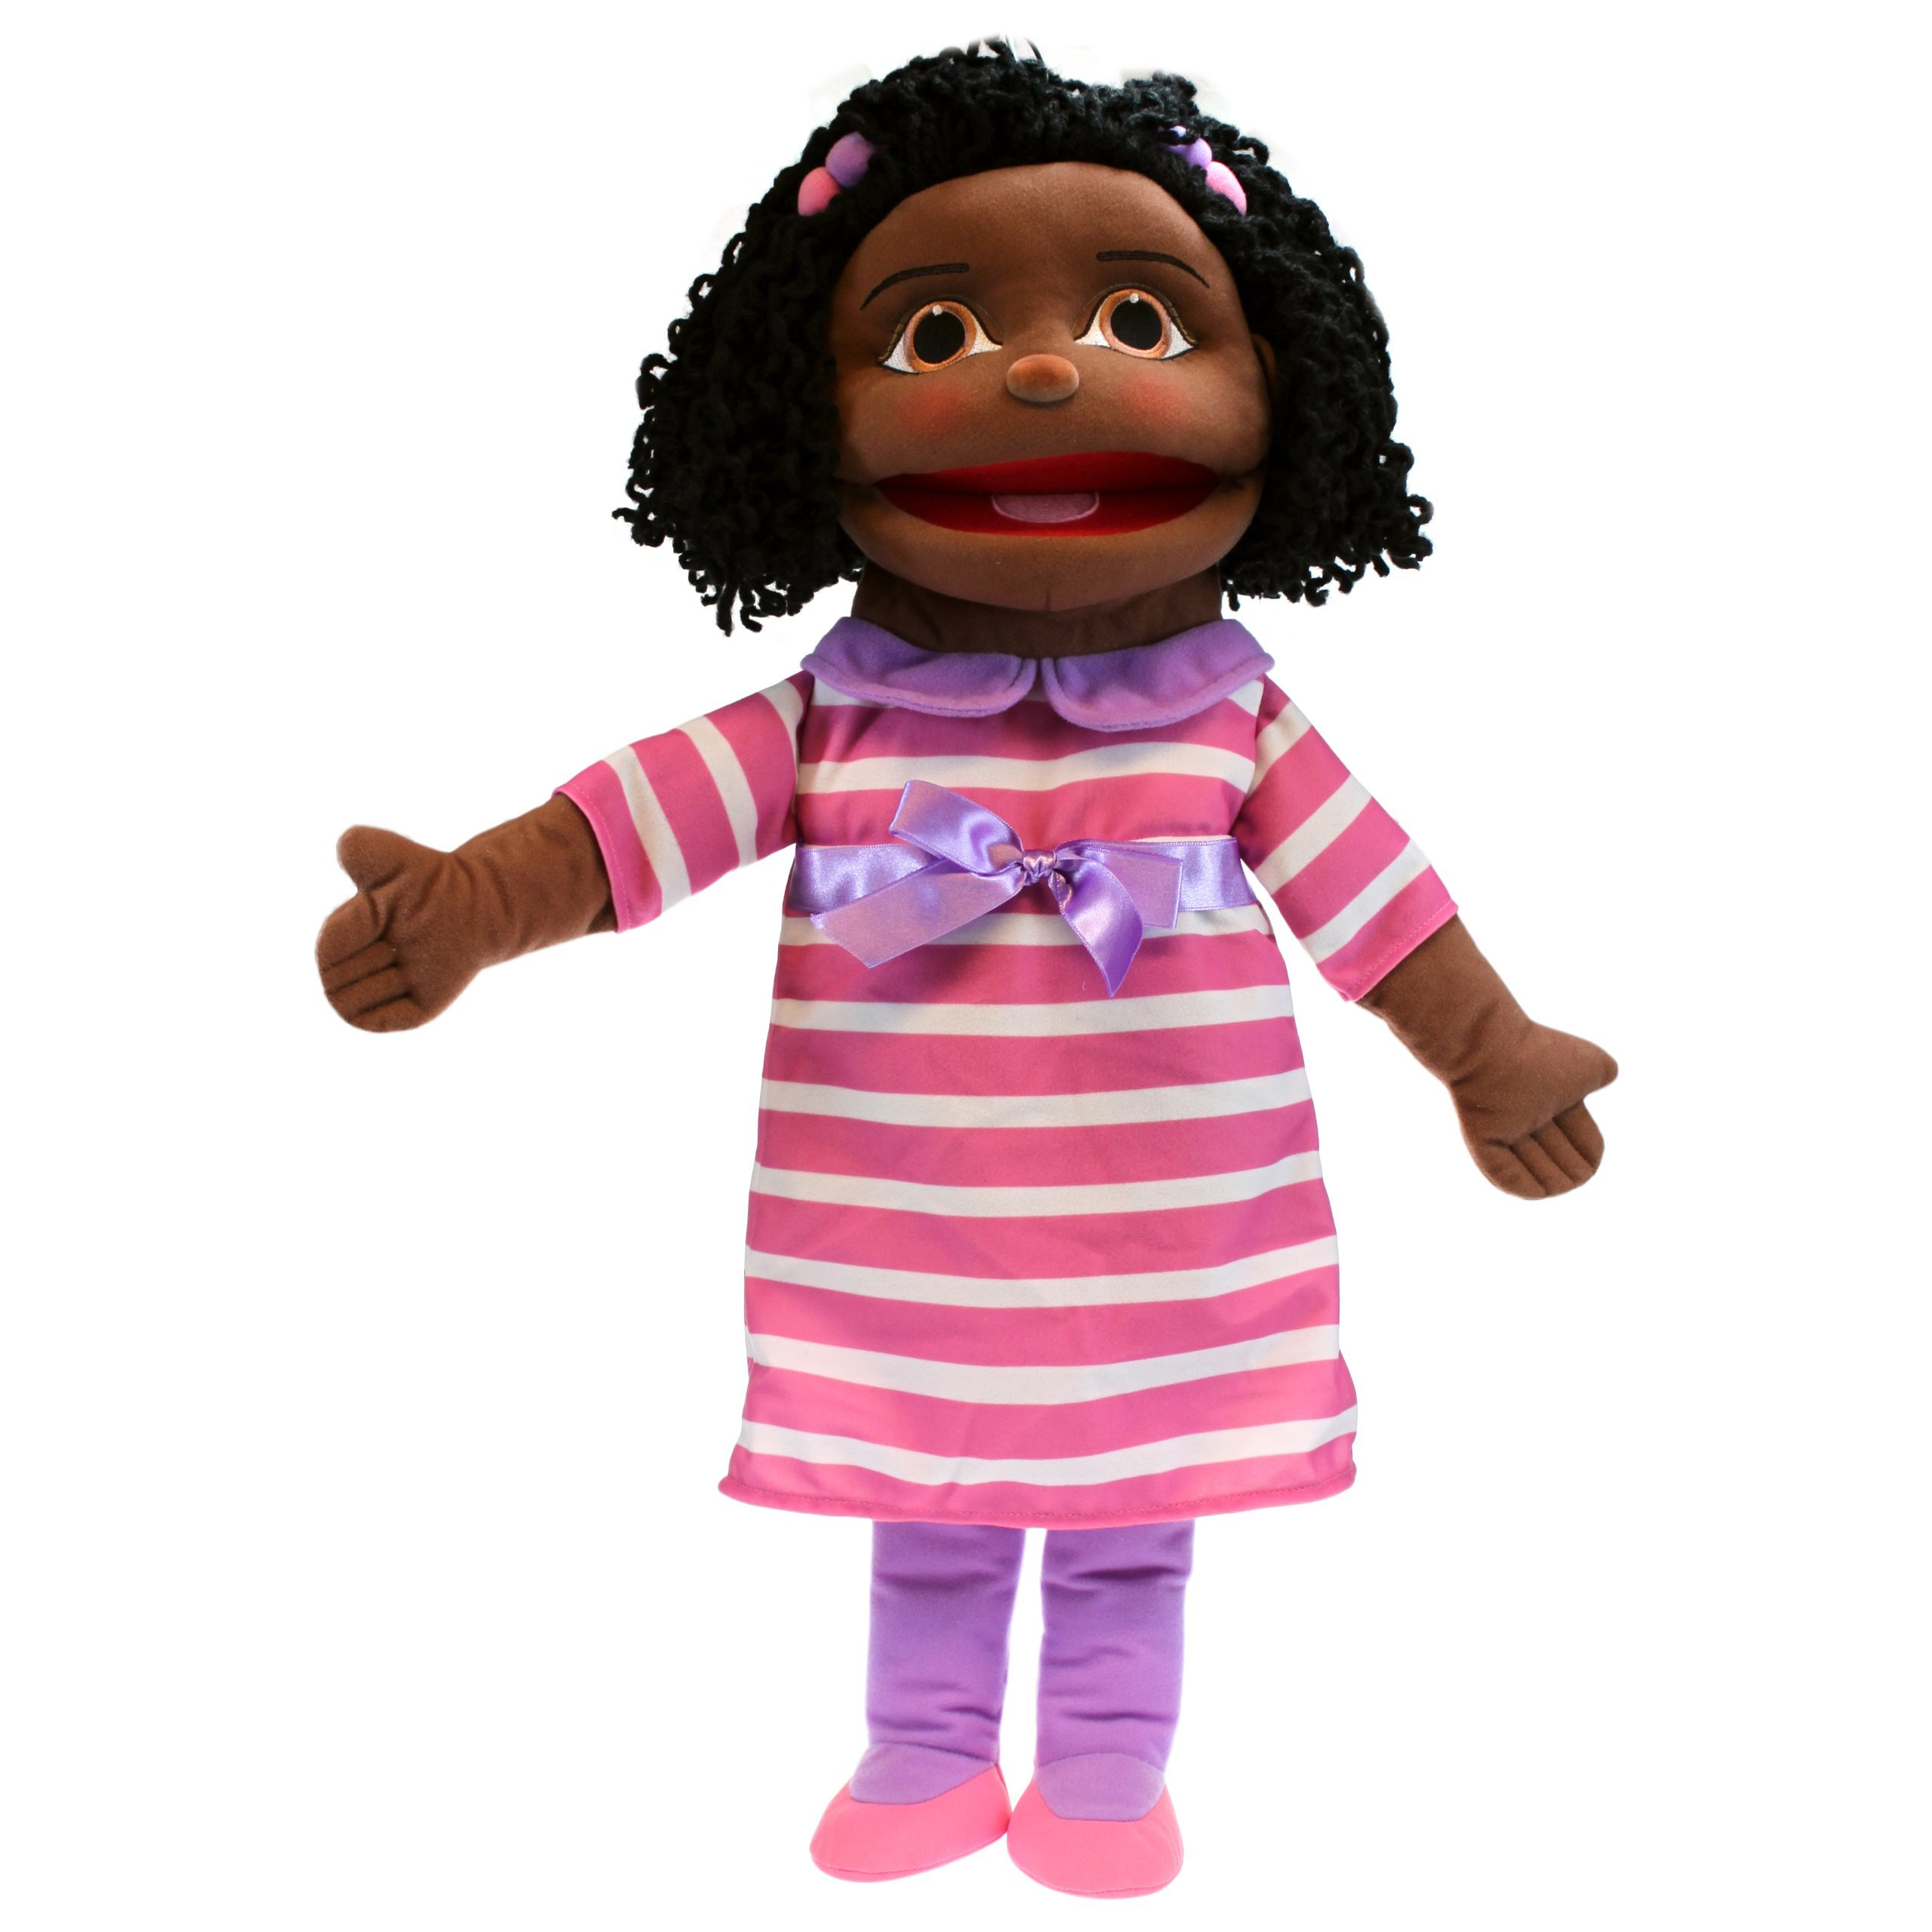 The Puppet Company Medium Sized Puppet Buddies Girl Hand Puppet - Dark Skin Tone